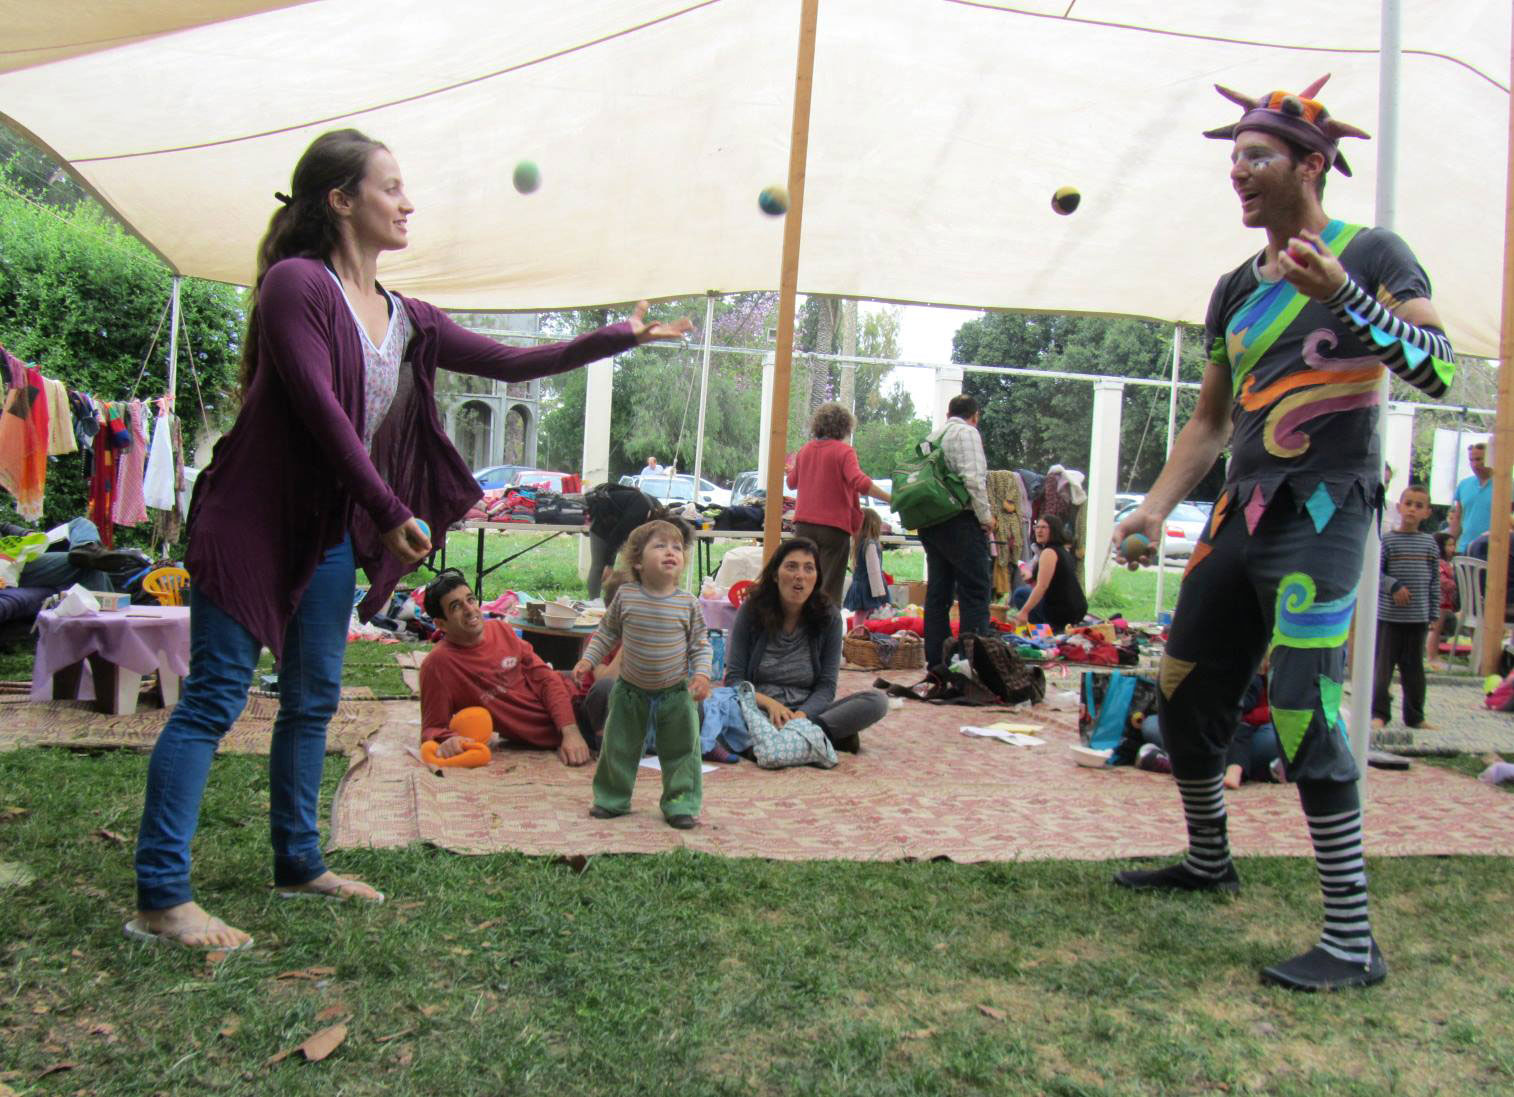 Juggling at circus event